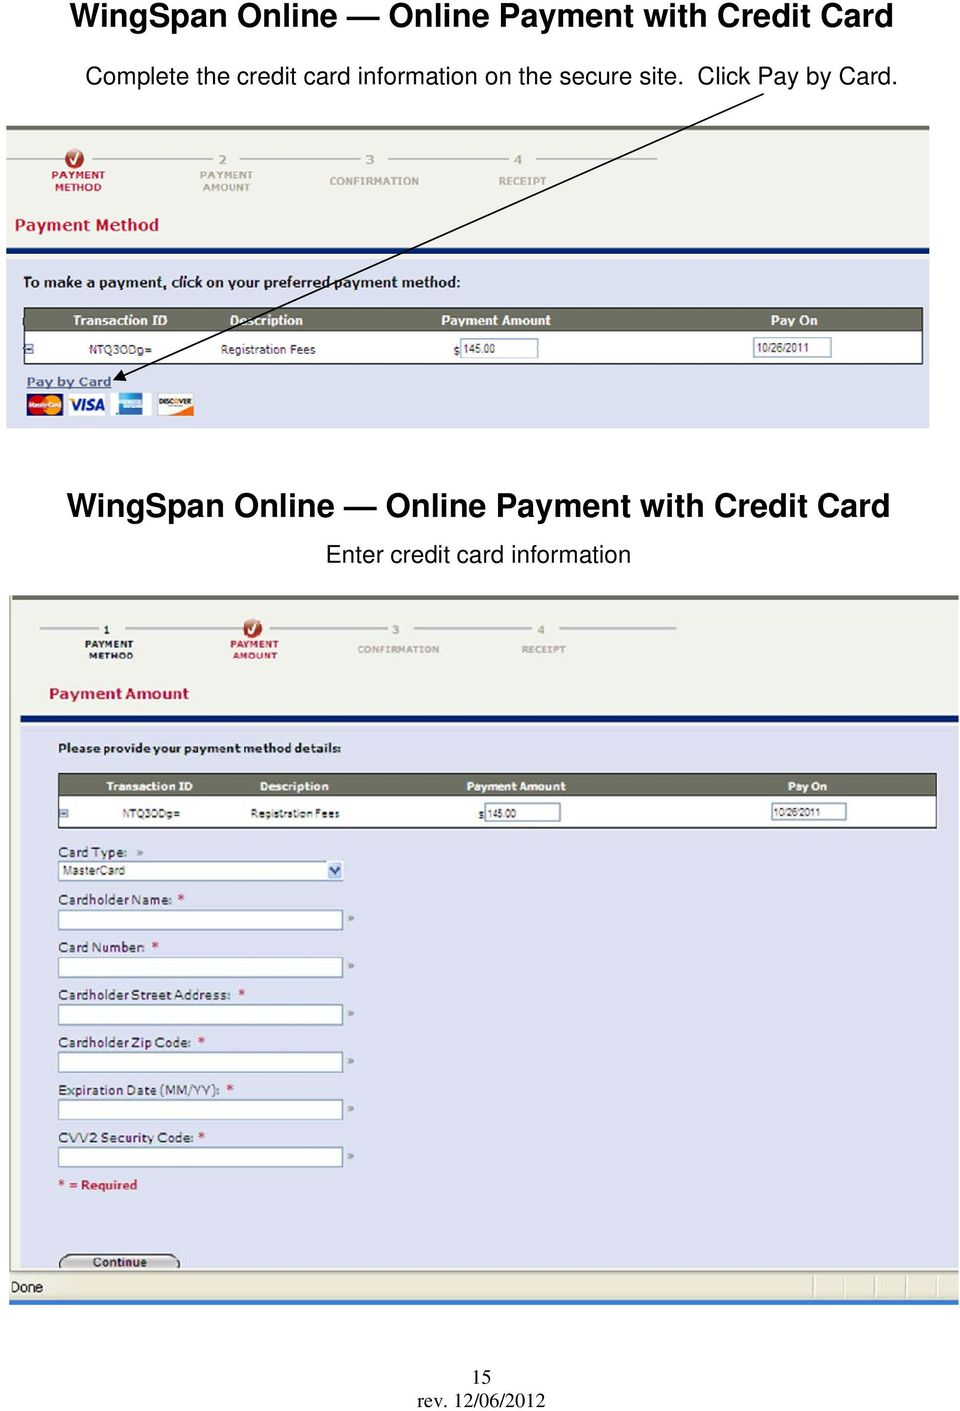 123456789 1234 Citrus Drive WingSpan Online Online Payment with